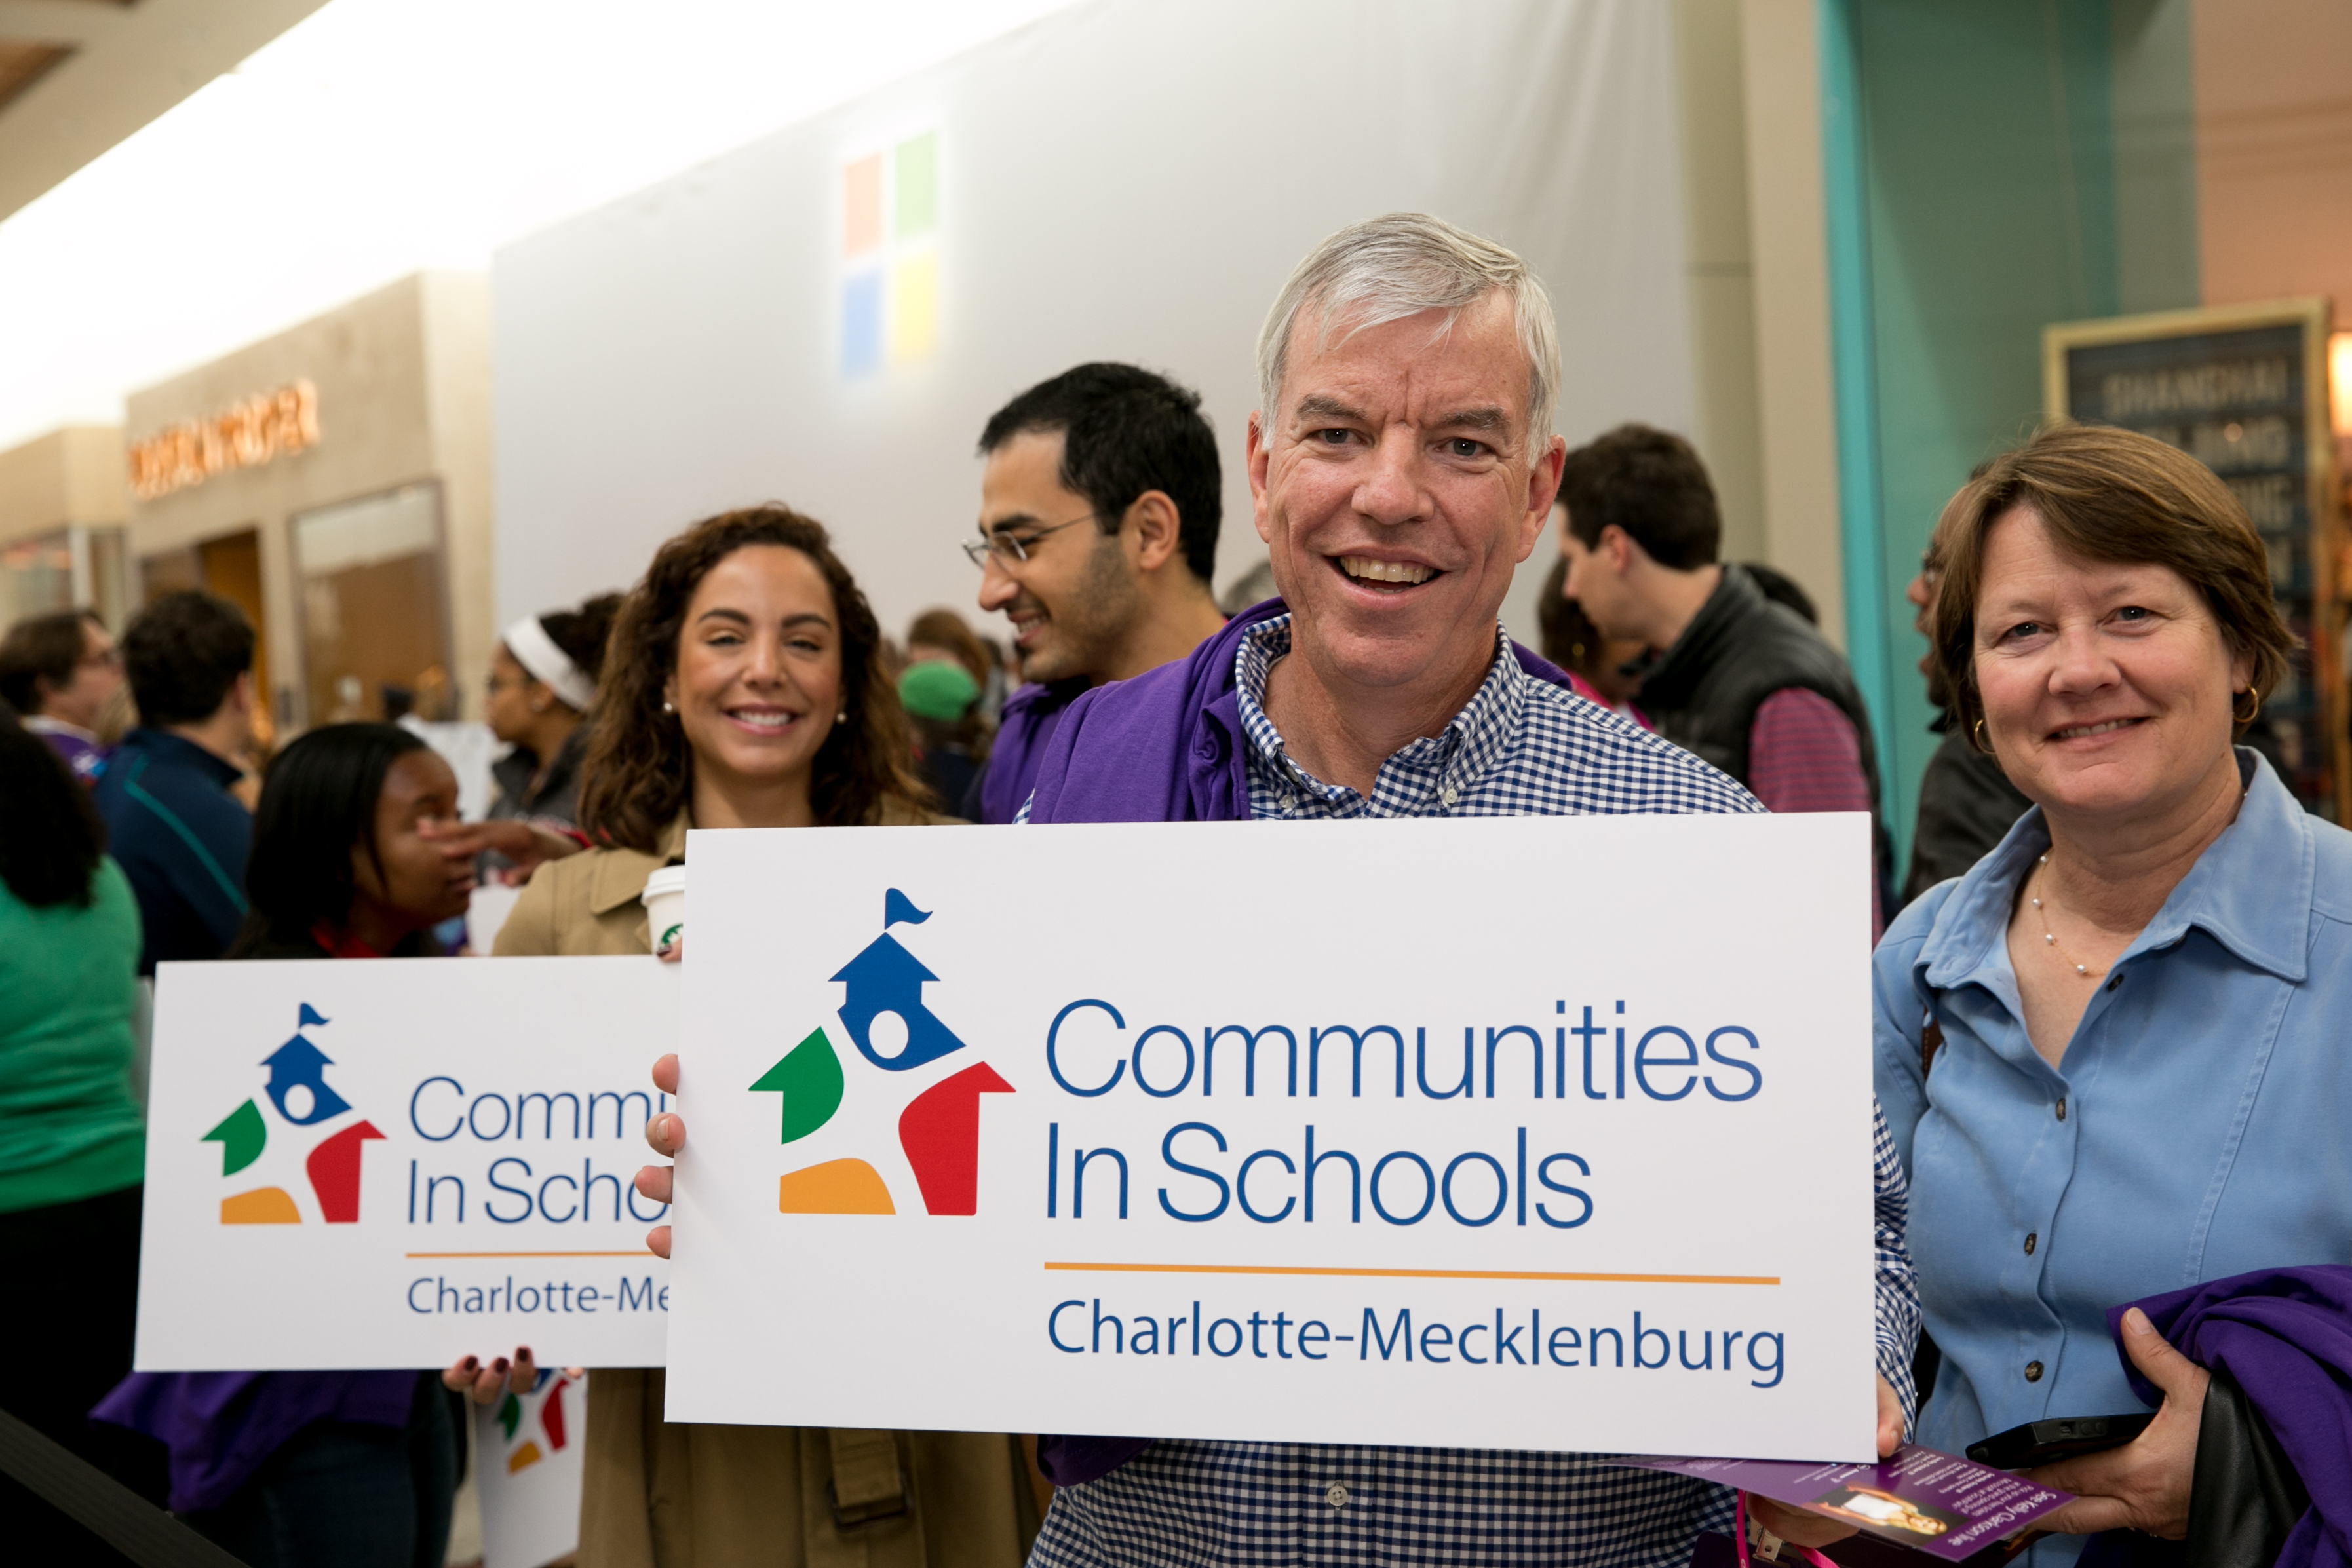 Communities In Schools, Microsoft Provide One Million Students Free Office 365